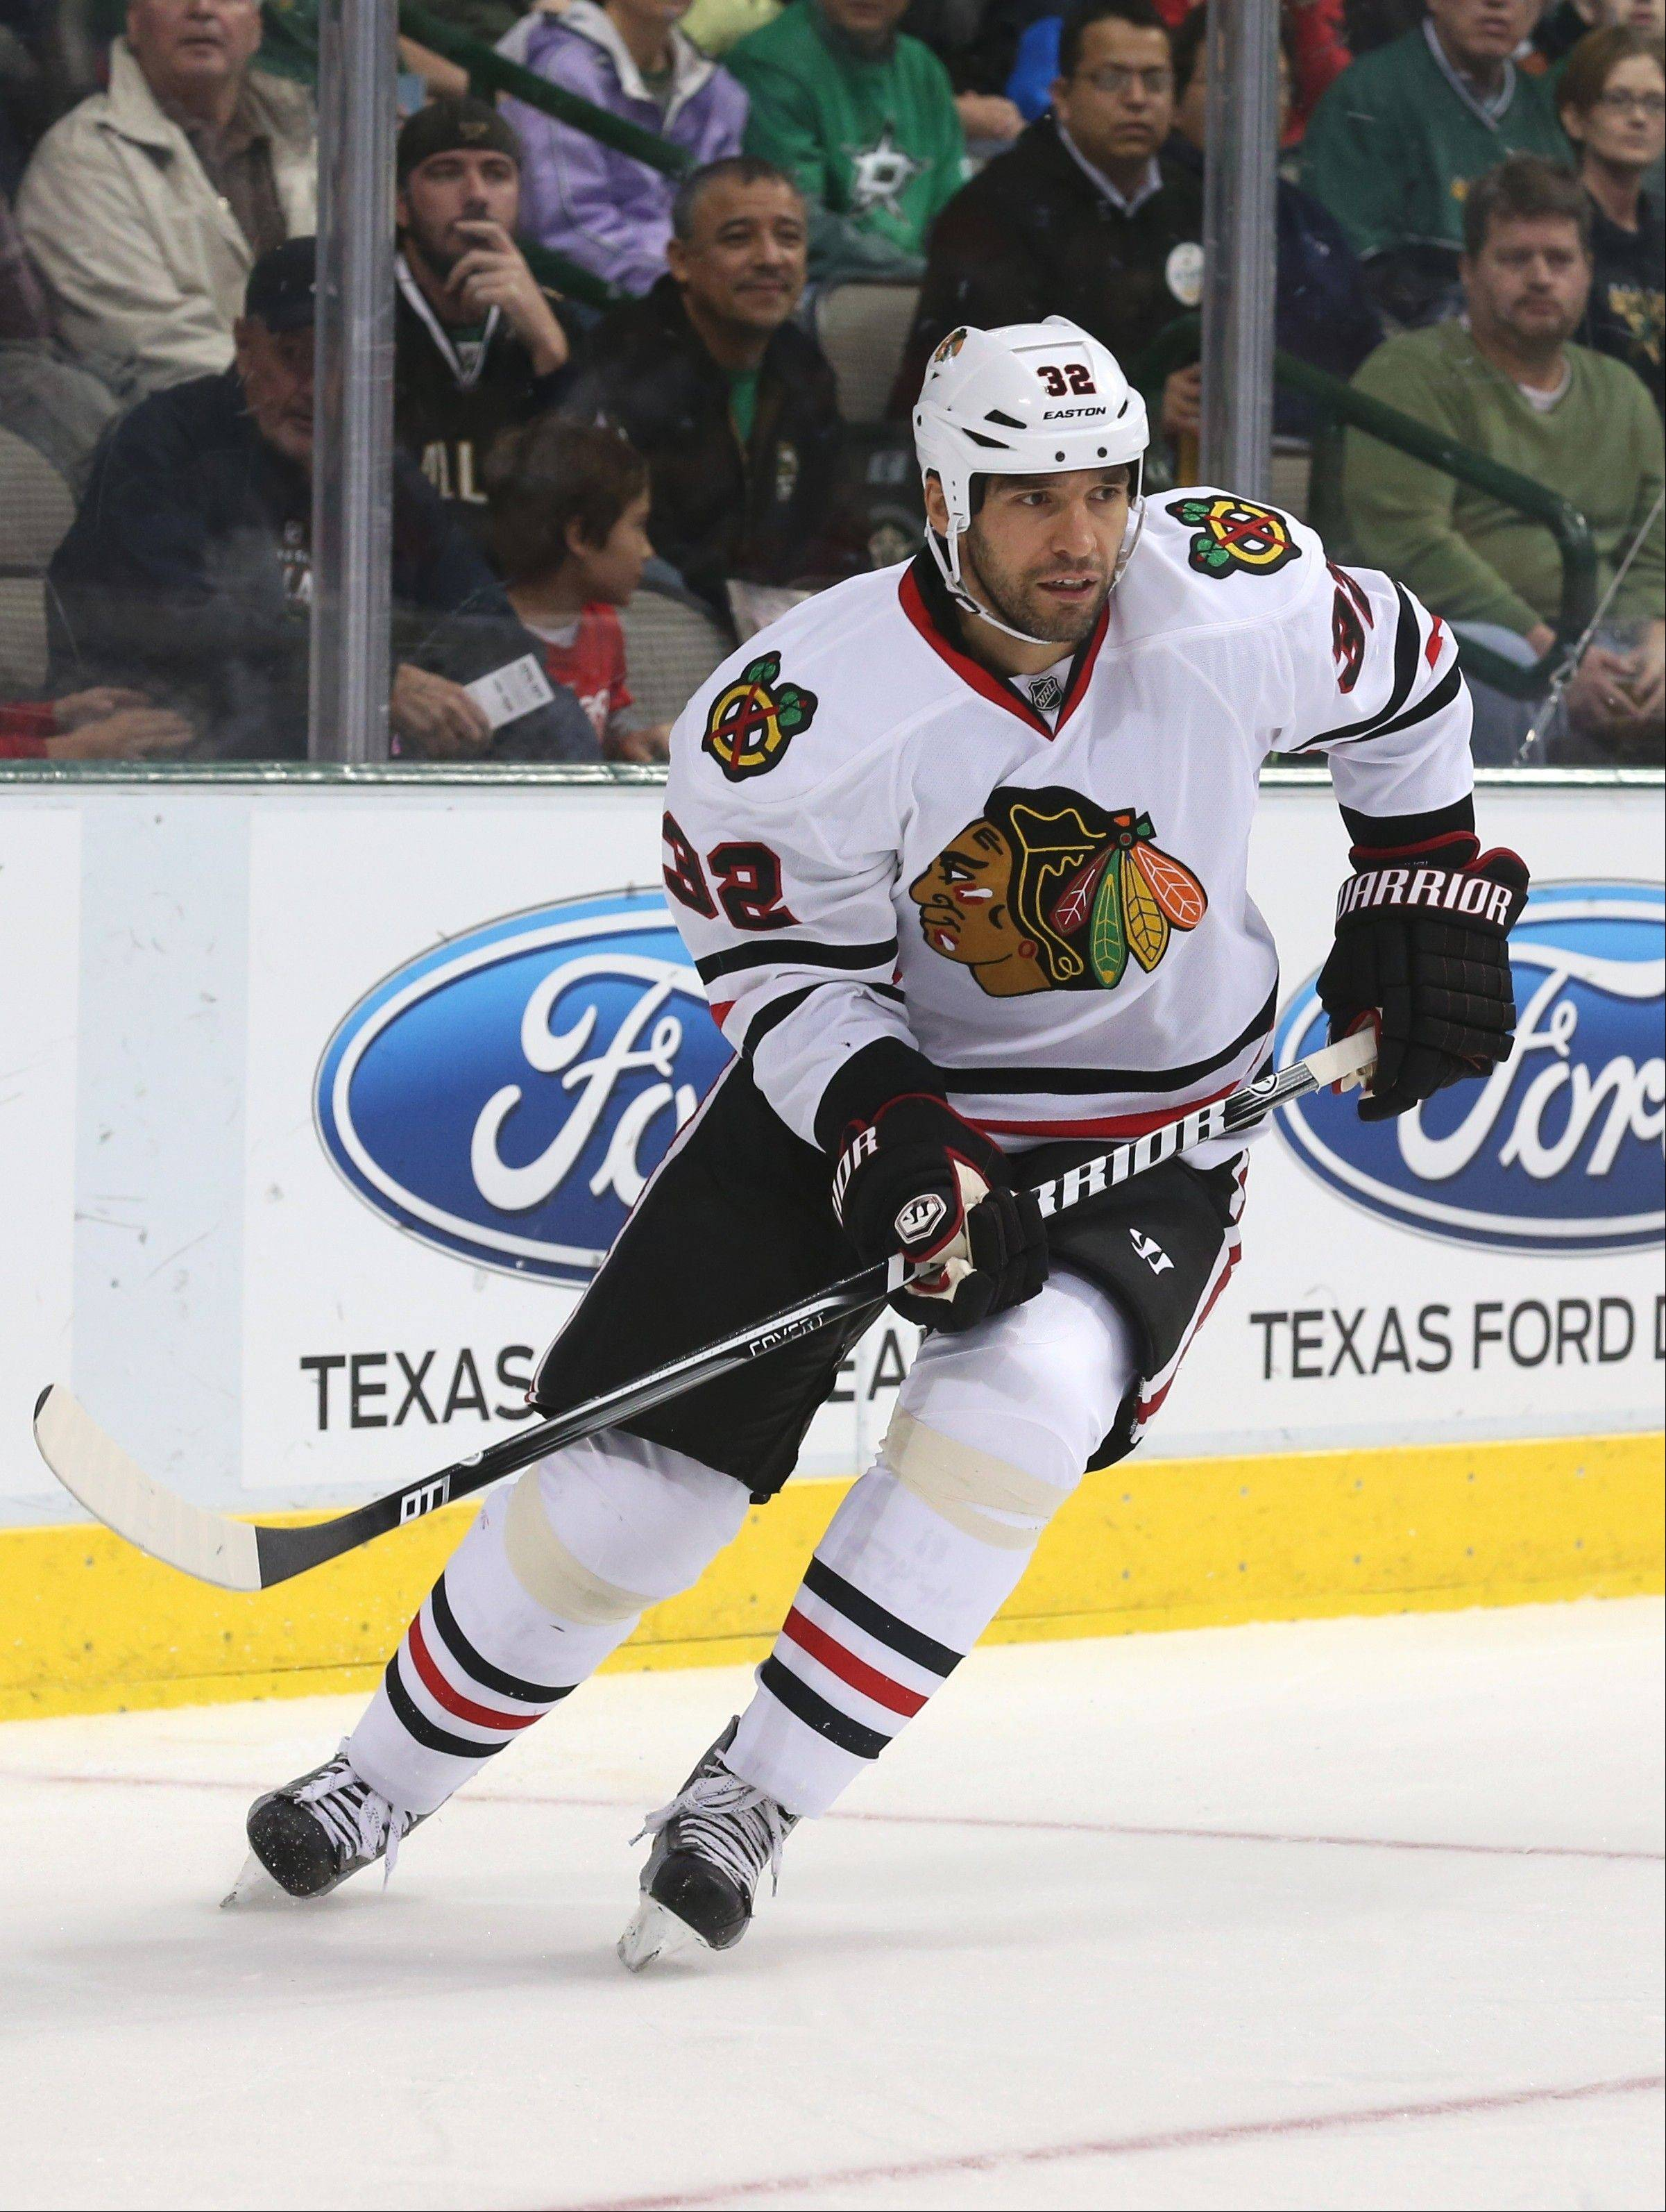 At least Blackhawks' Rozsival can smile now